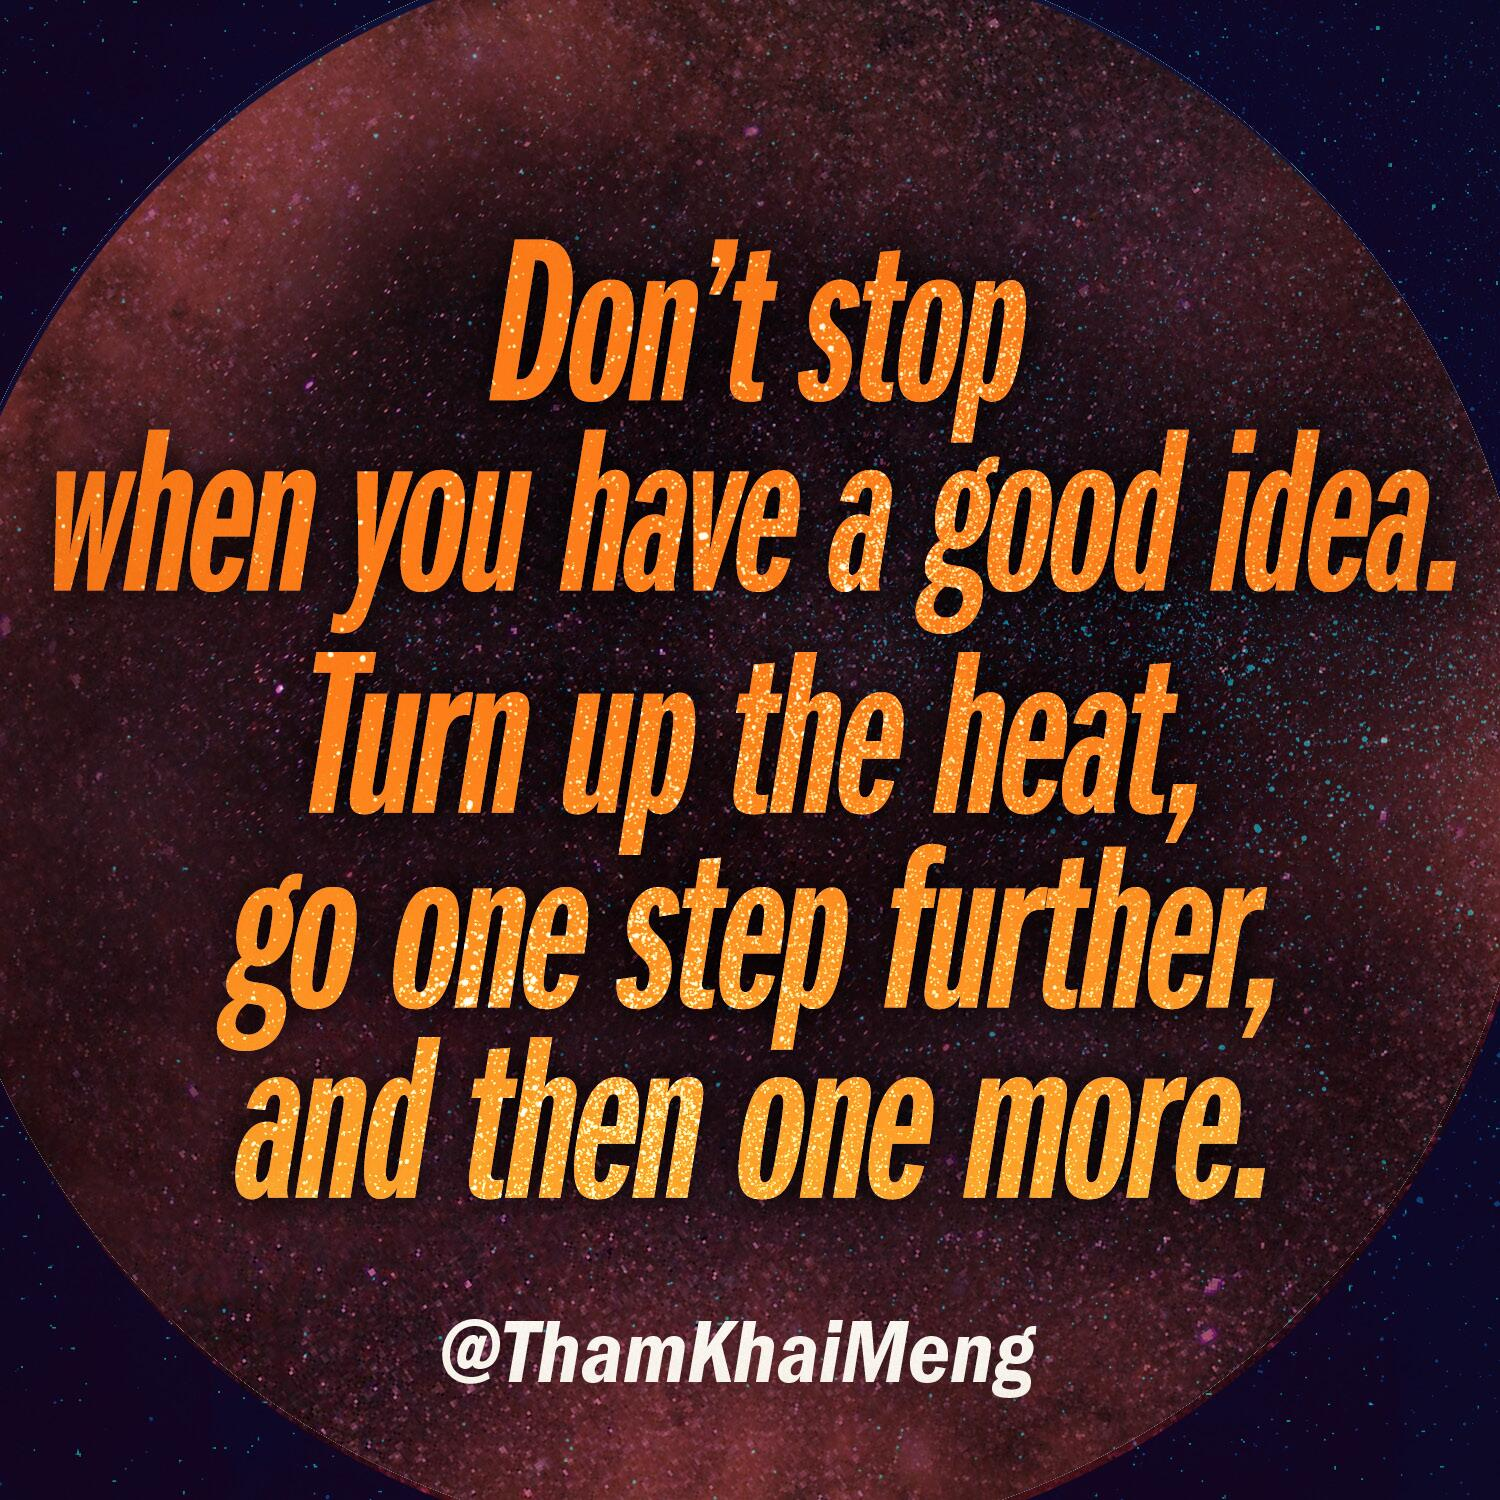 Always kick it up a notch. #DontStop. A message from our WWCCO, @ThamKhaiMeng http://t.co/mvkS2GxVul